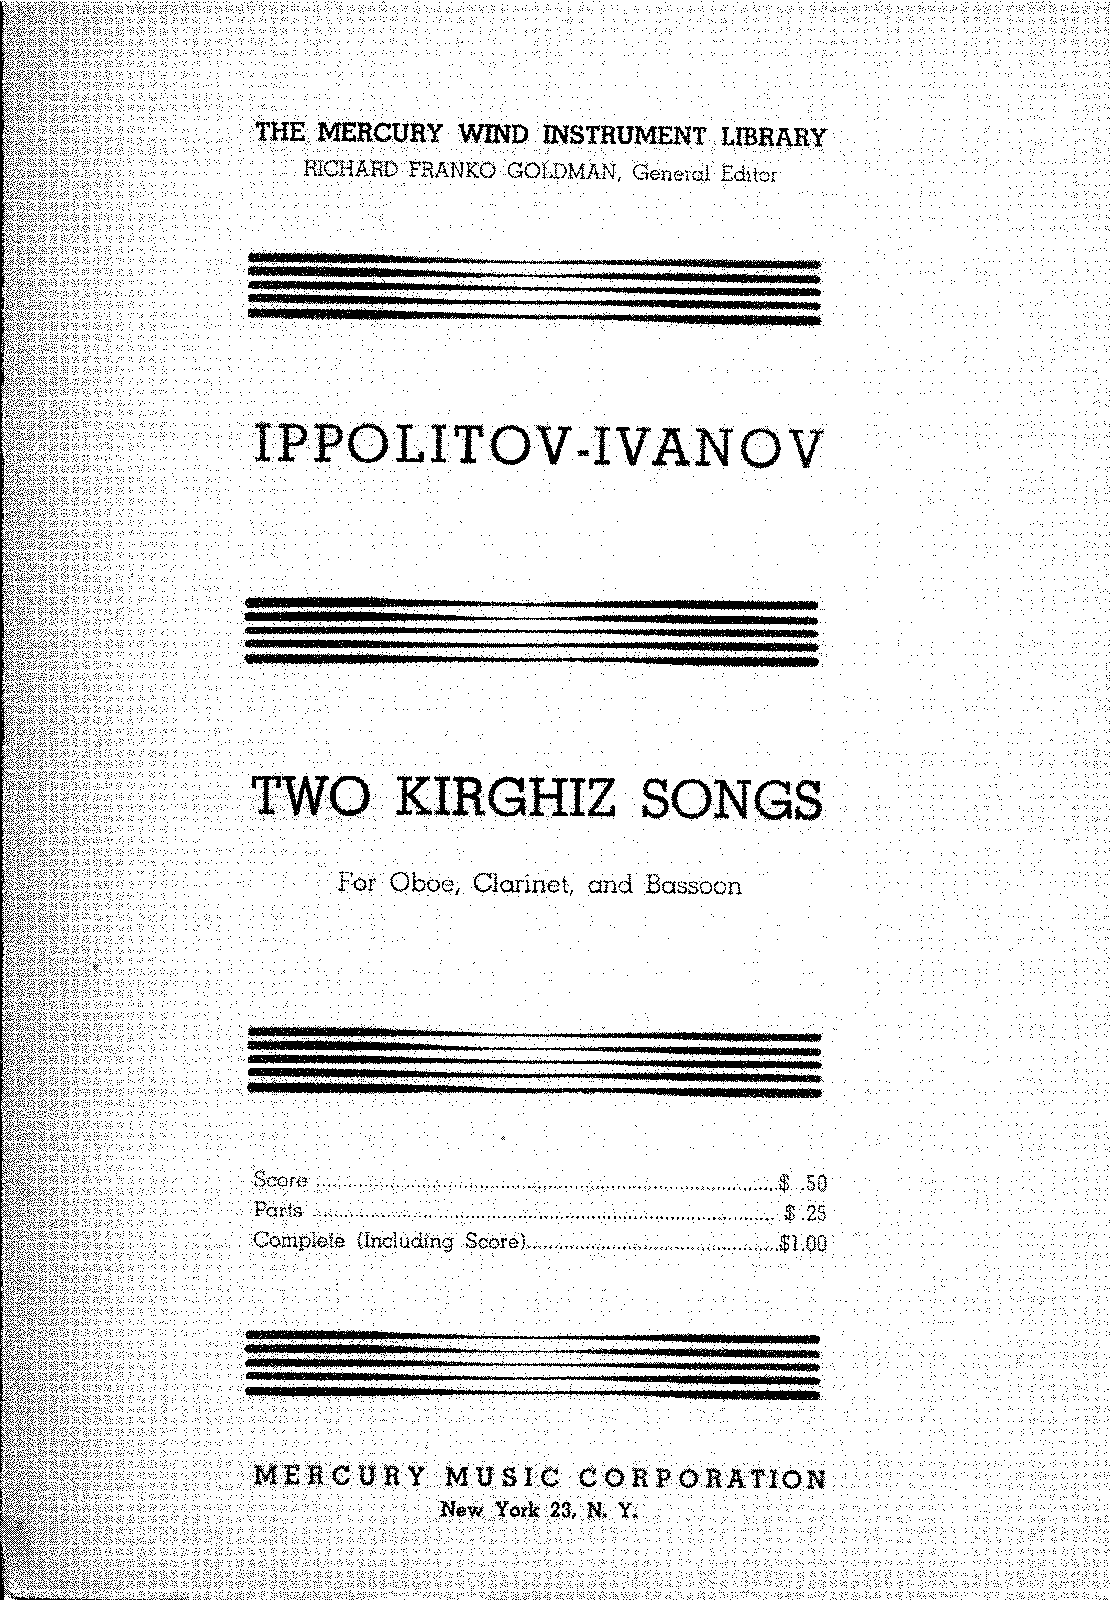 PMLP416948-Mikhail Ippolitov-Ivanov - Two Kirghiz Songs for Oboe, Clarinet and Bassoon (Score).pdf